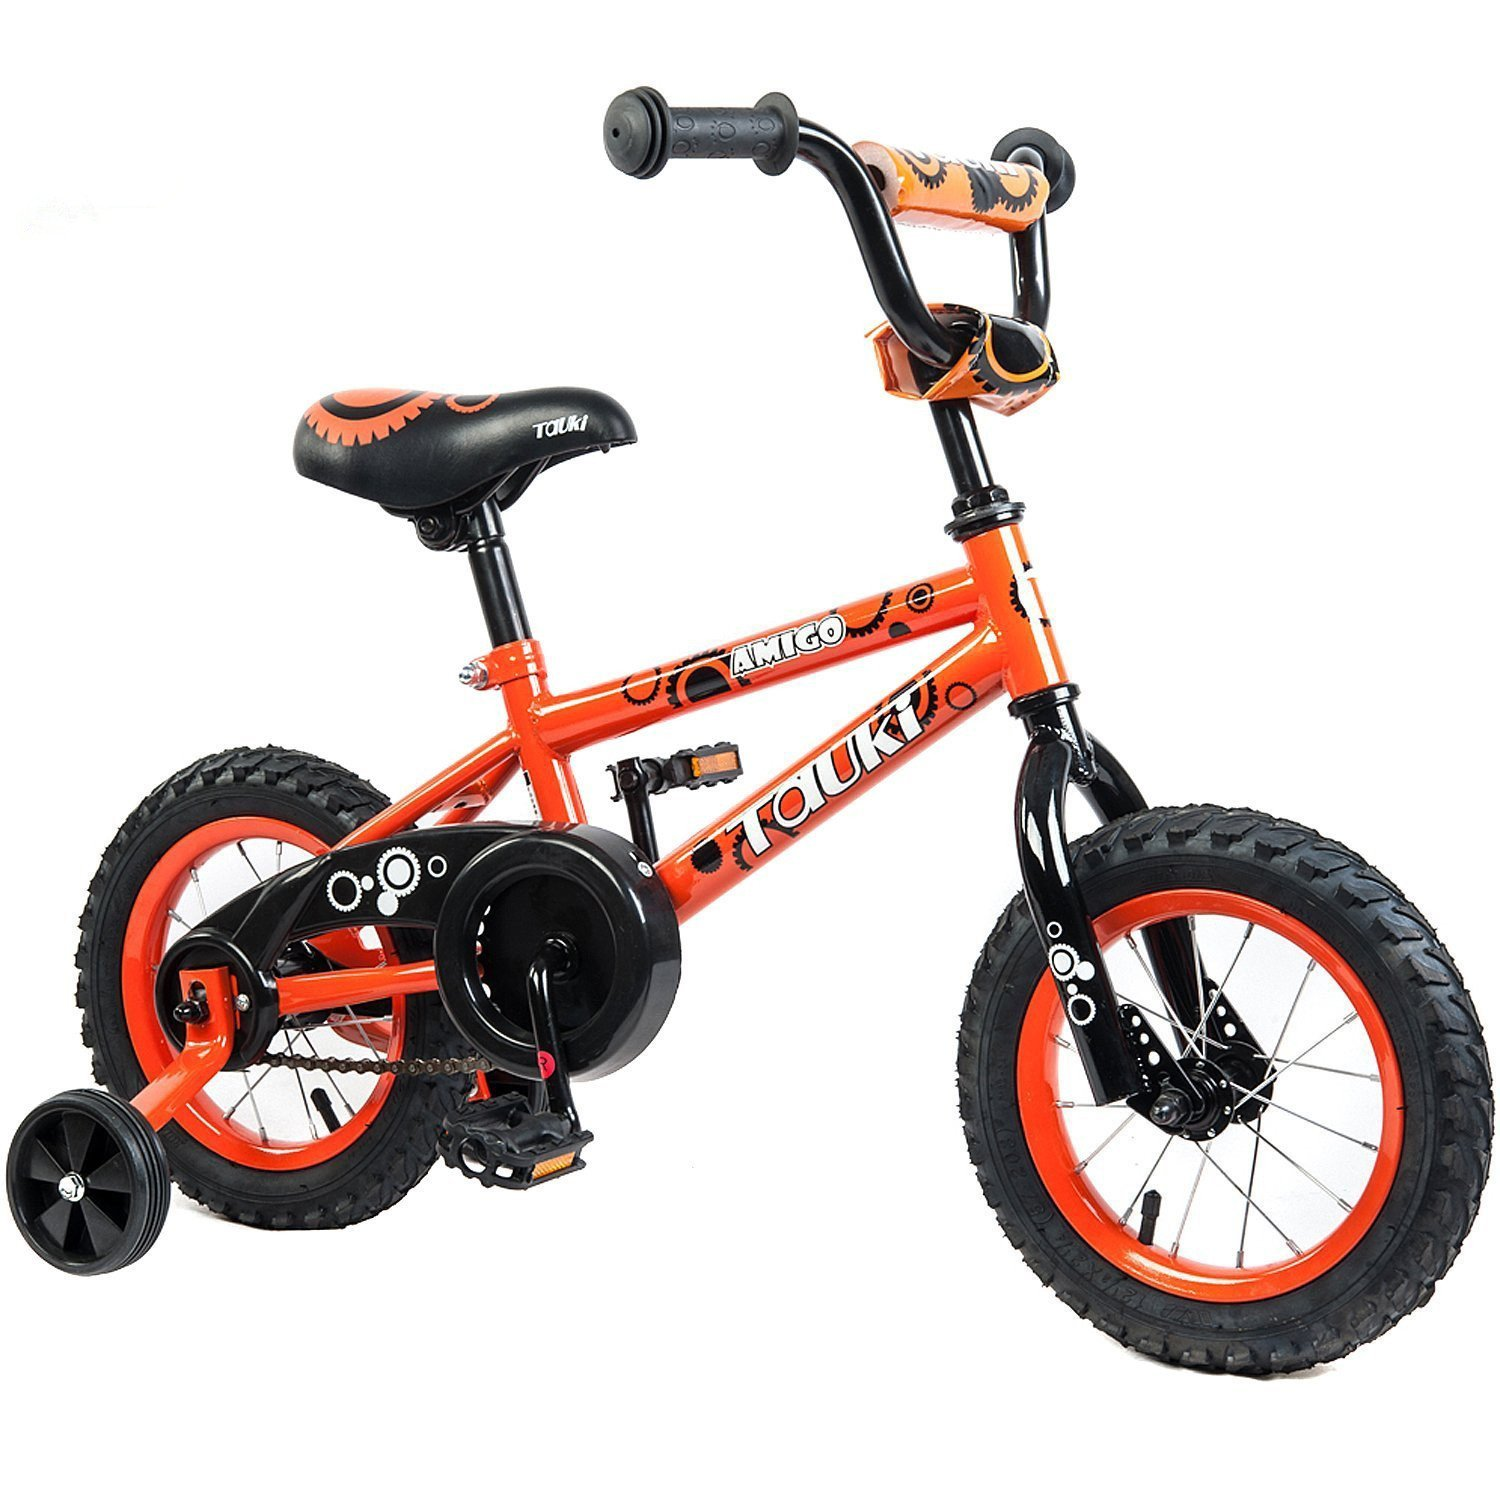 Tauki Kid Bike BMX Bike for Boys and Girls, 12 Inch, 16 Inch